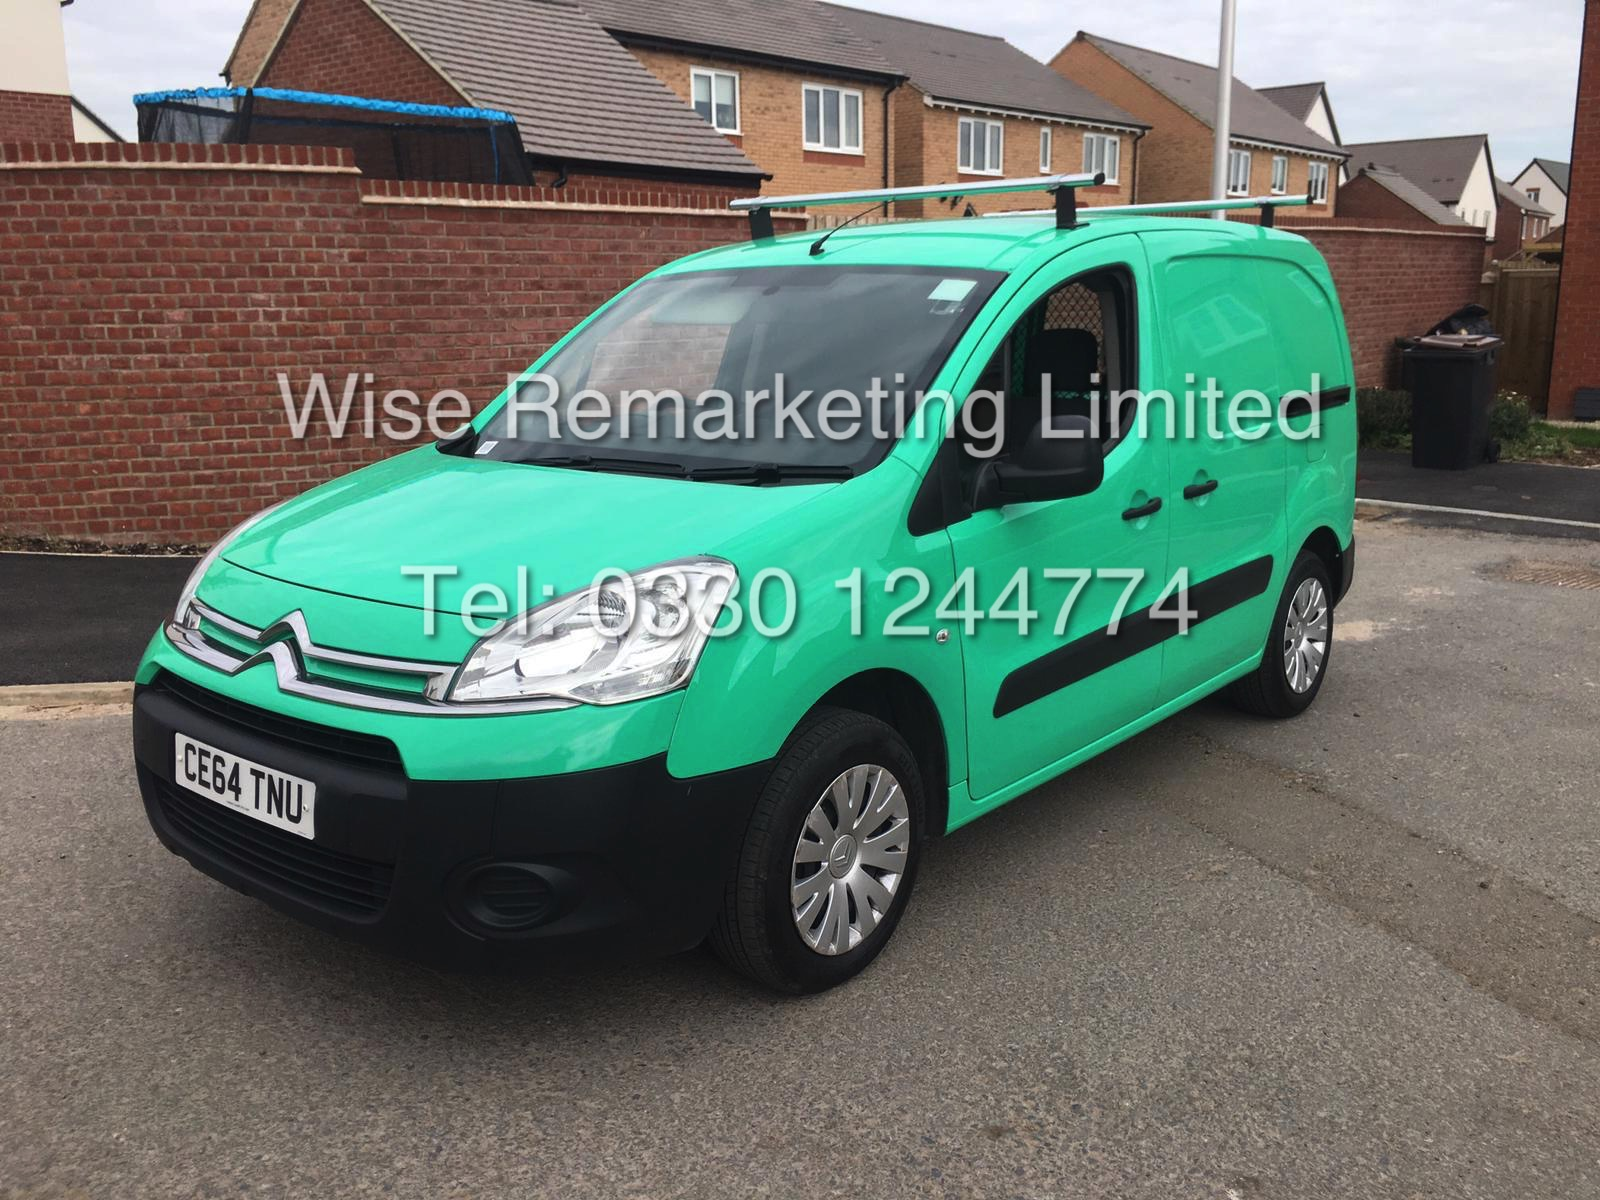 CITROEN BERLINGO 1.6 HDI LX AIRDREAM EDITION *2015 SPEC* - Image 2 of 11